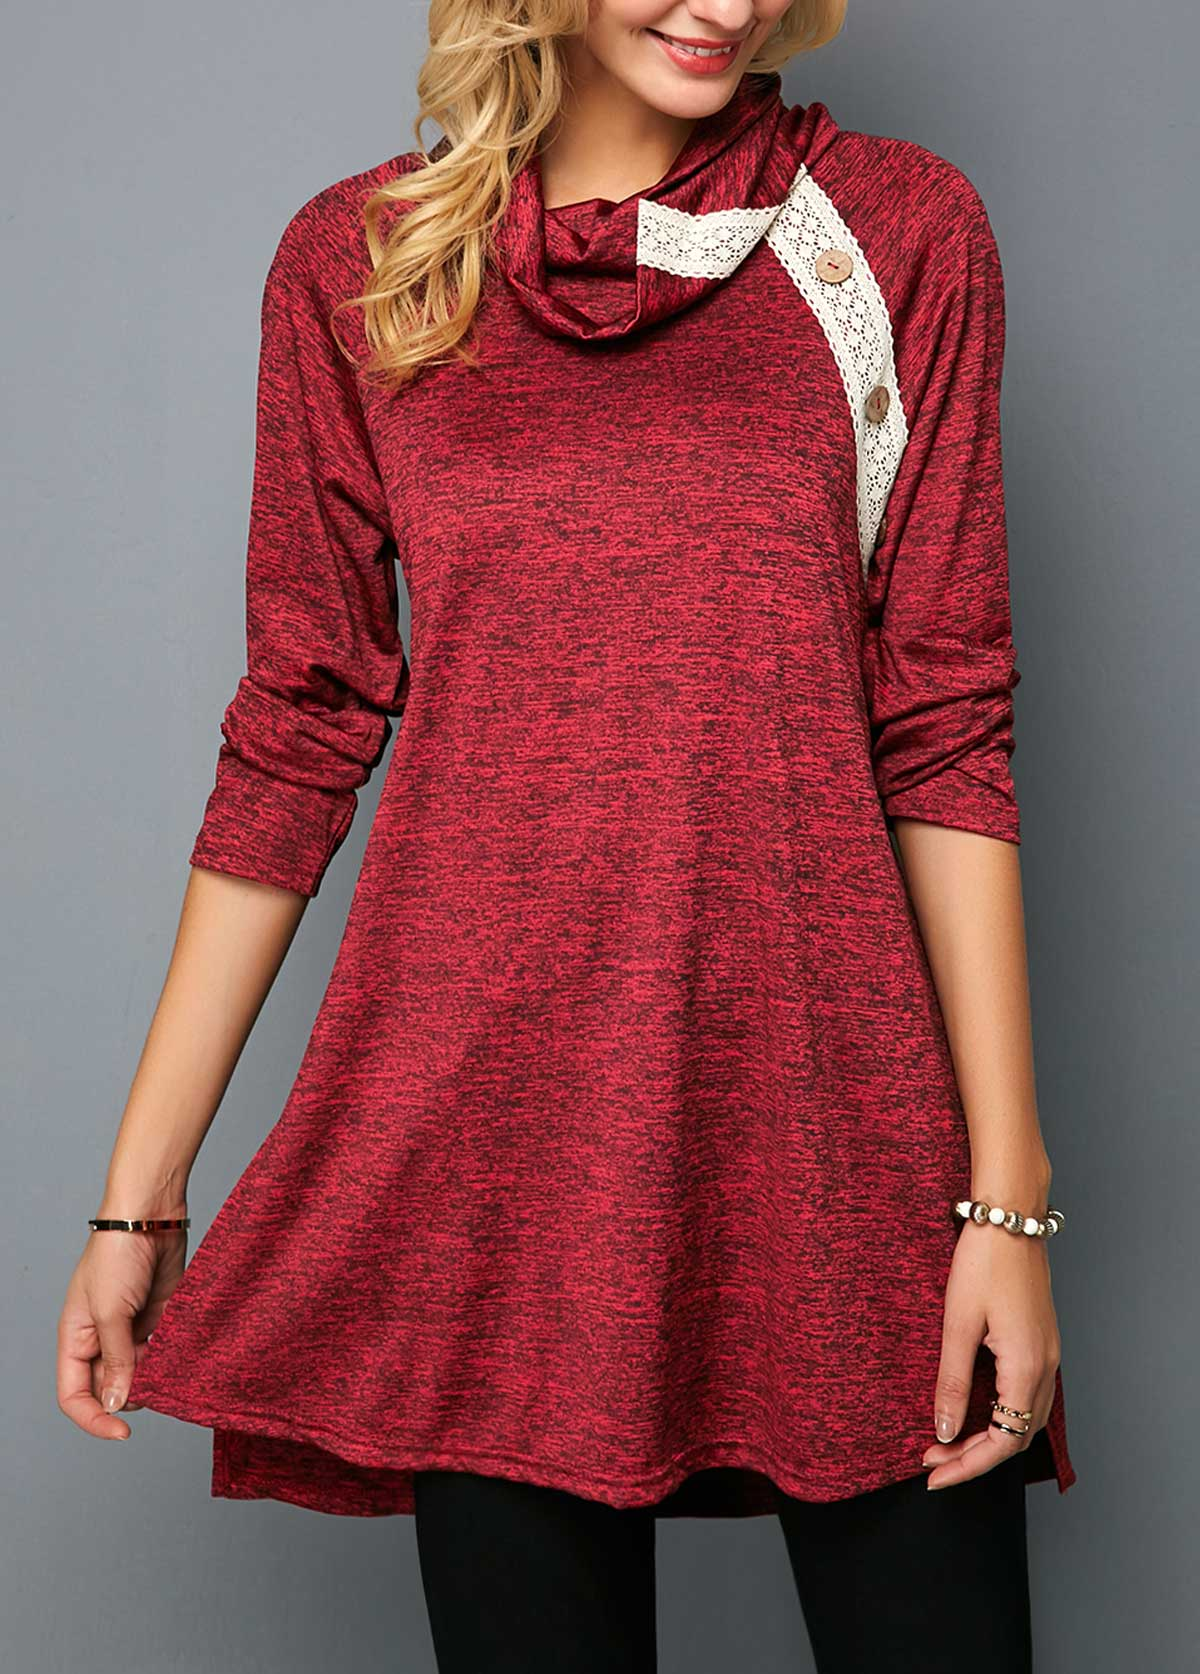 ROTITA Cowl Neck Button Detail Wine Red Tunic T Shirt